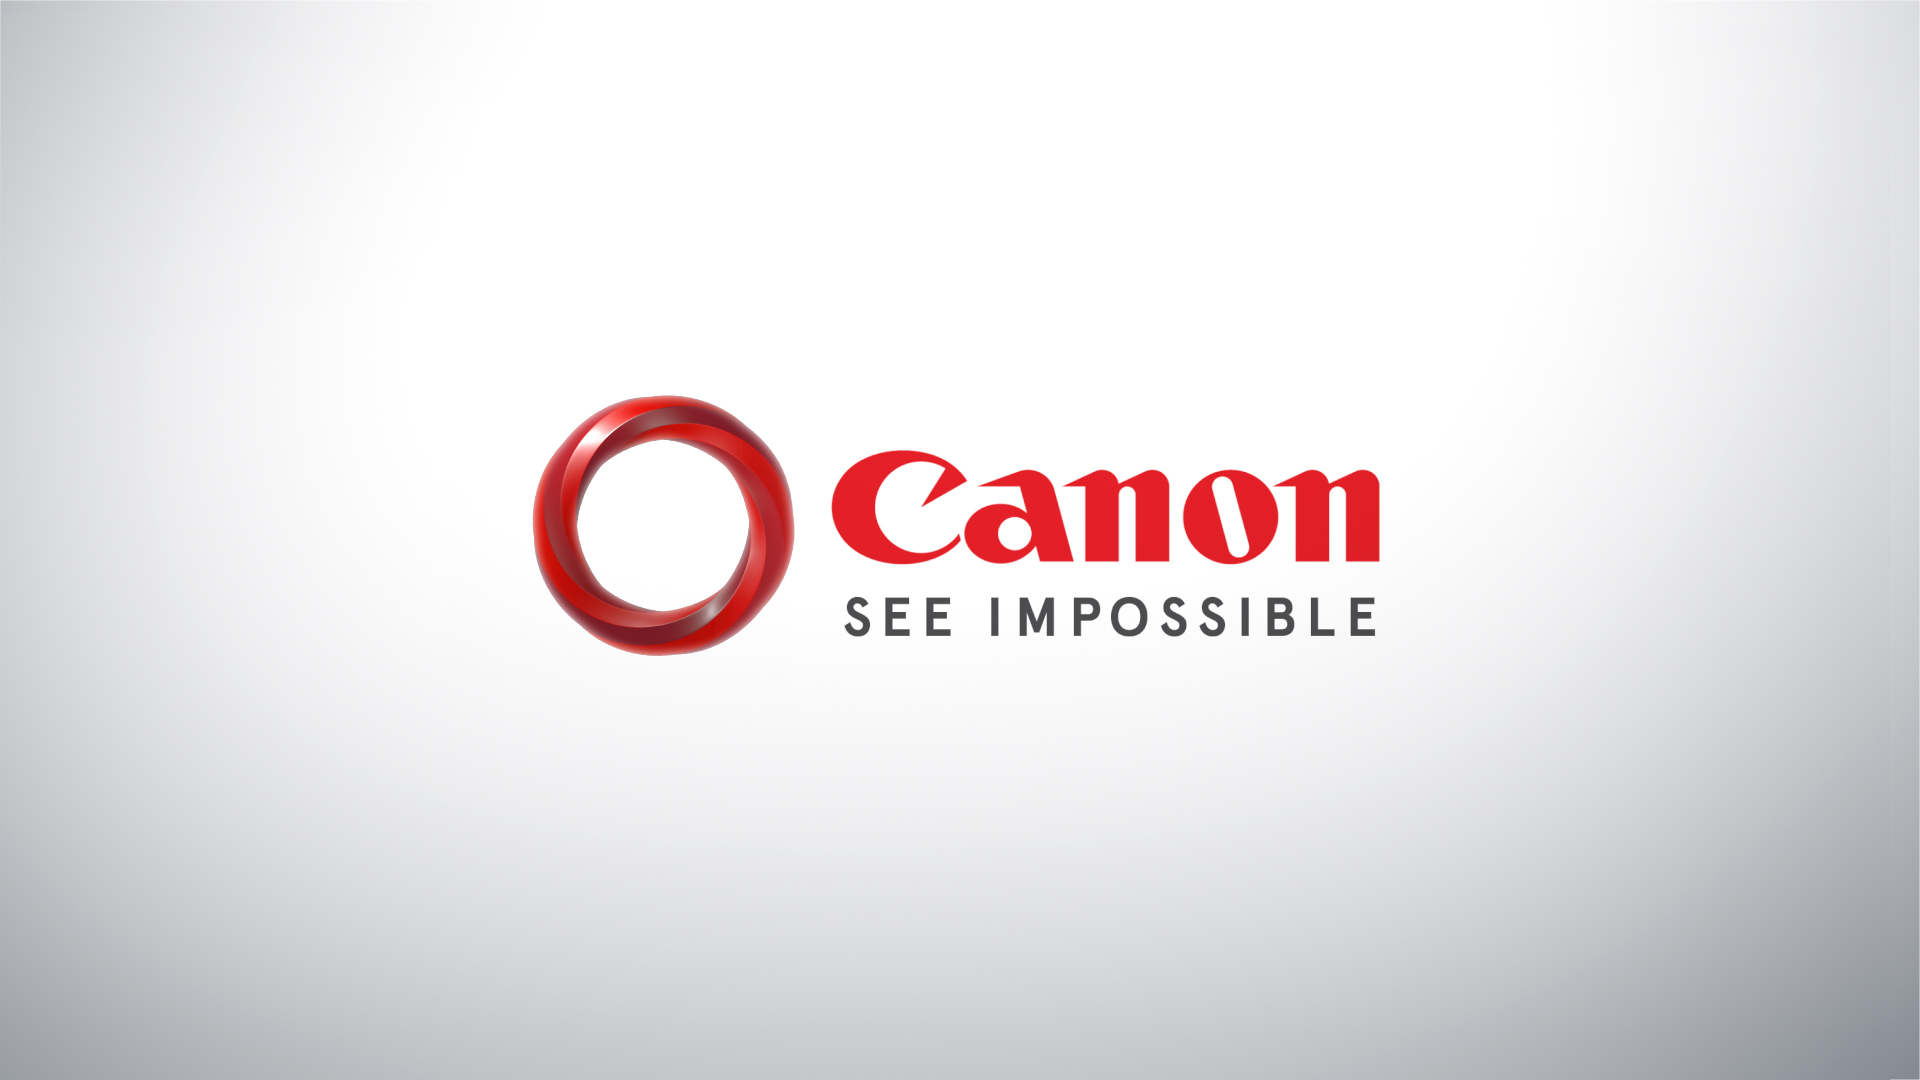 Canon Hd Wallpapers